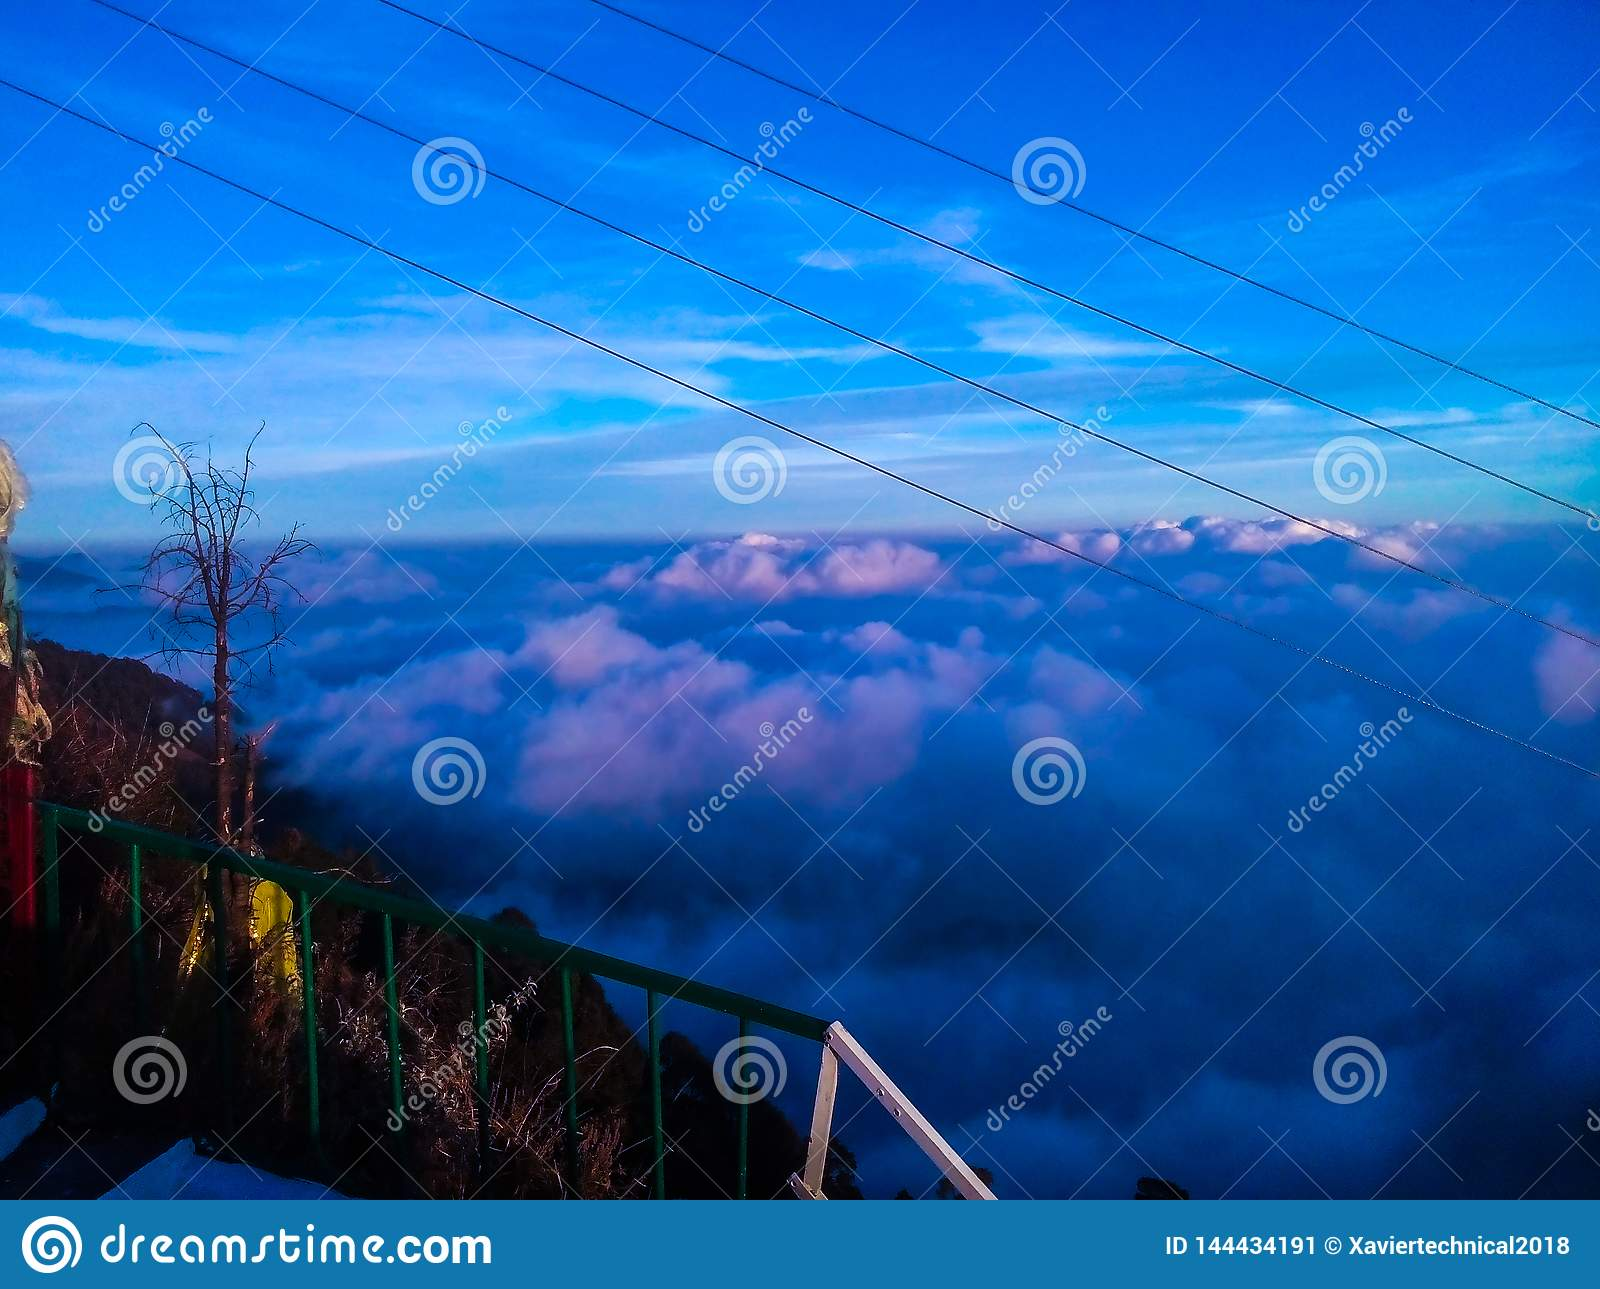 Blue clouds over mountains in evening shadow